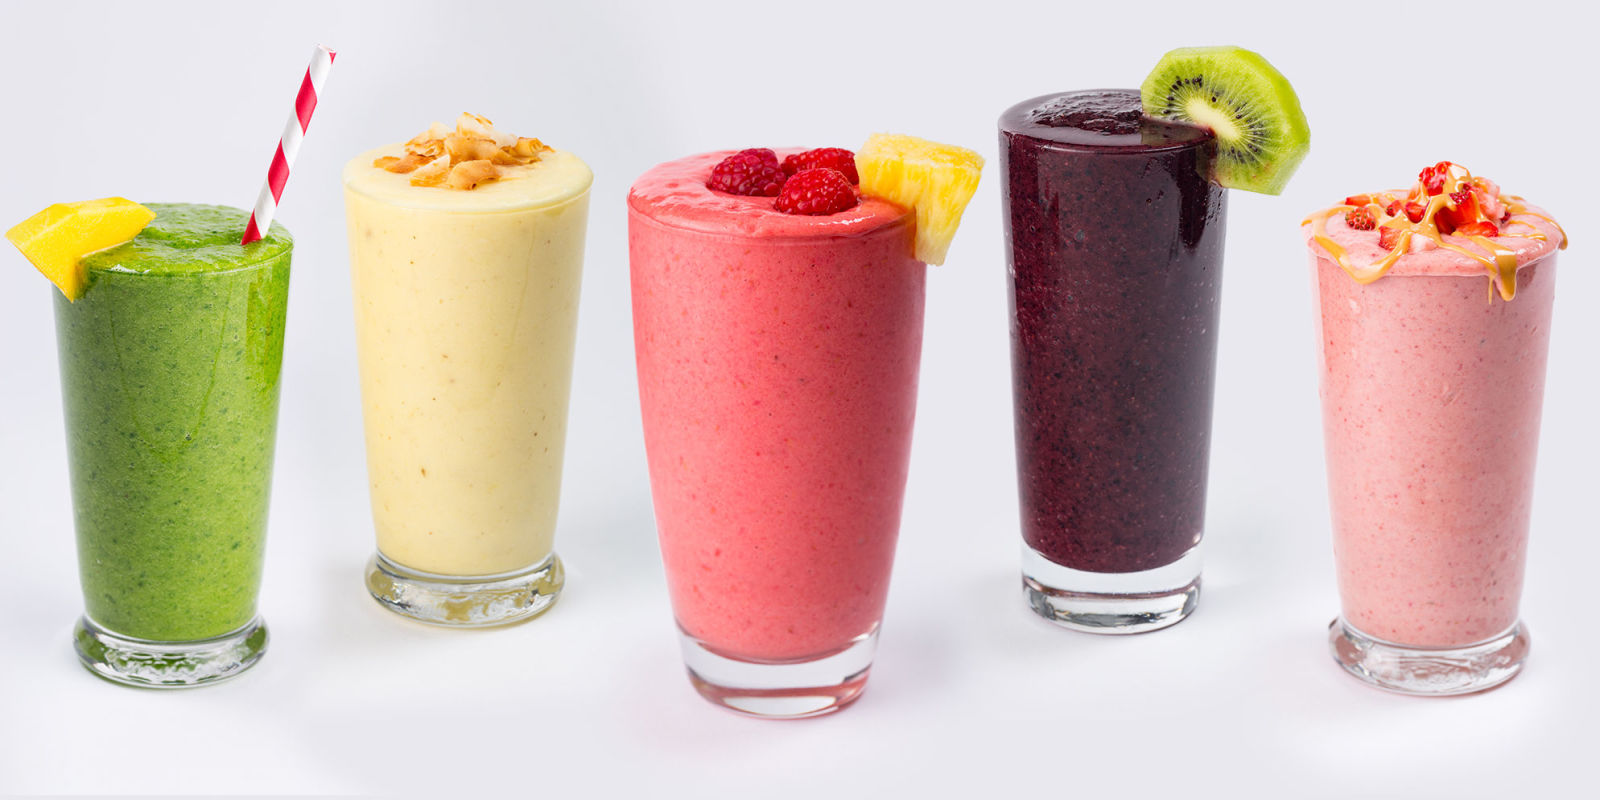 healthy breakfast fruit smoothies which fruit is healthy